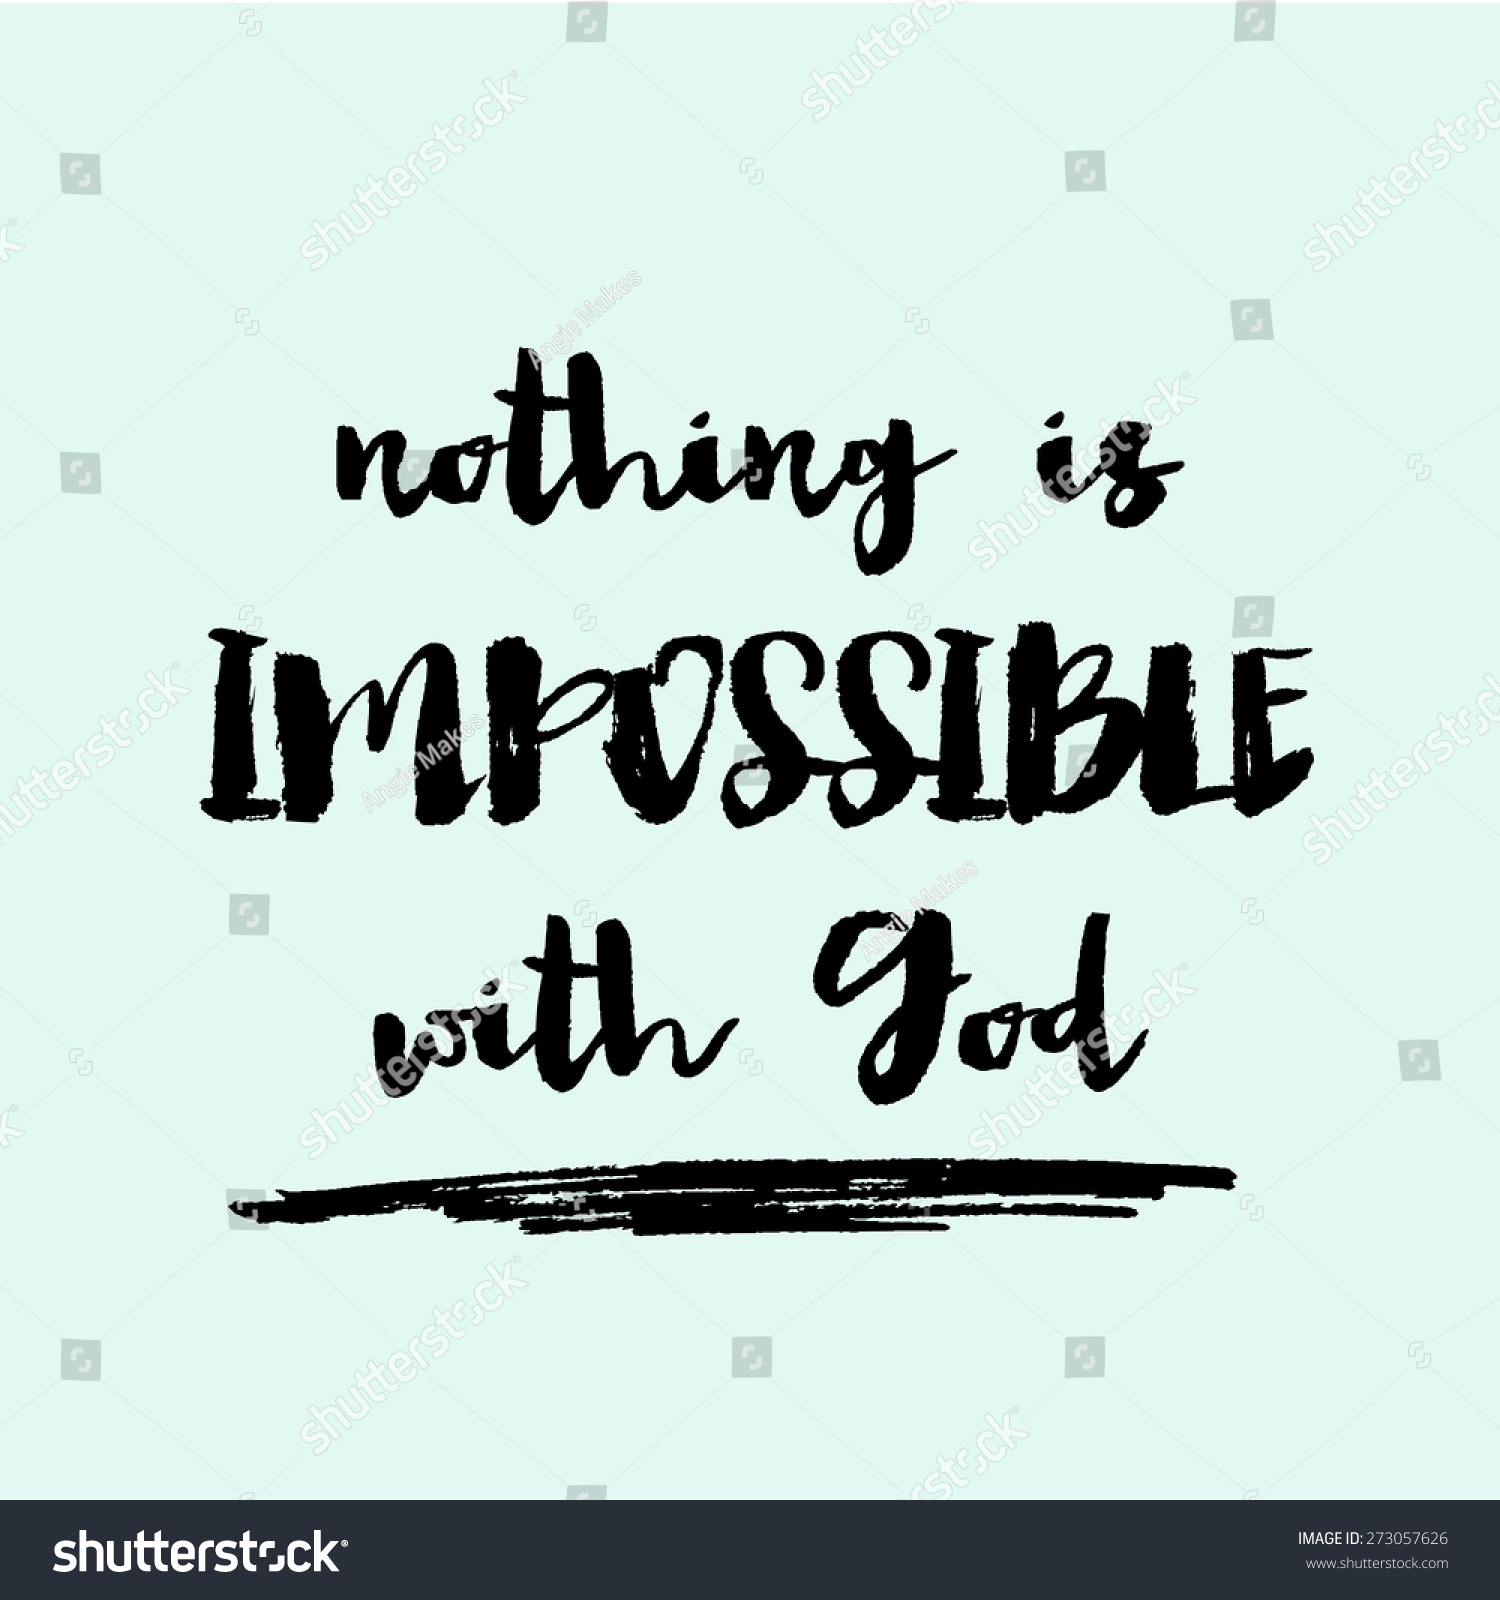 Nothing impossible god background modern hand stock